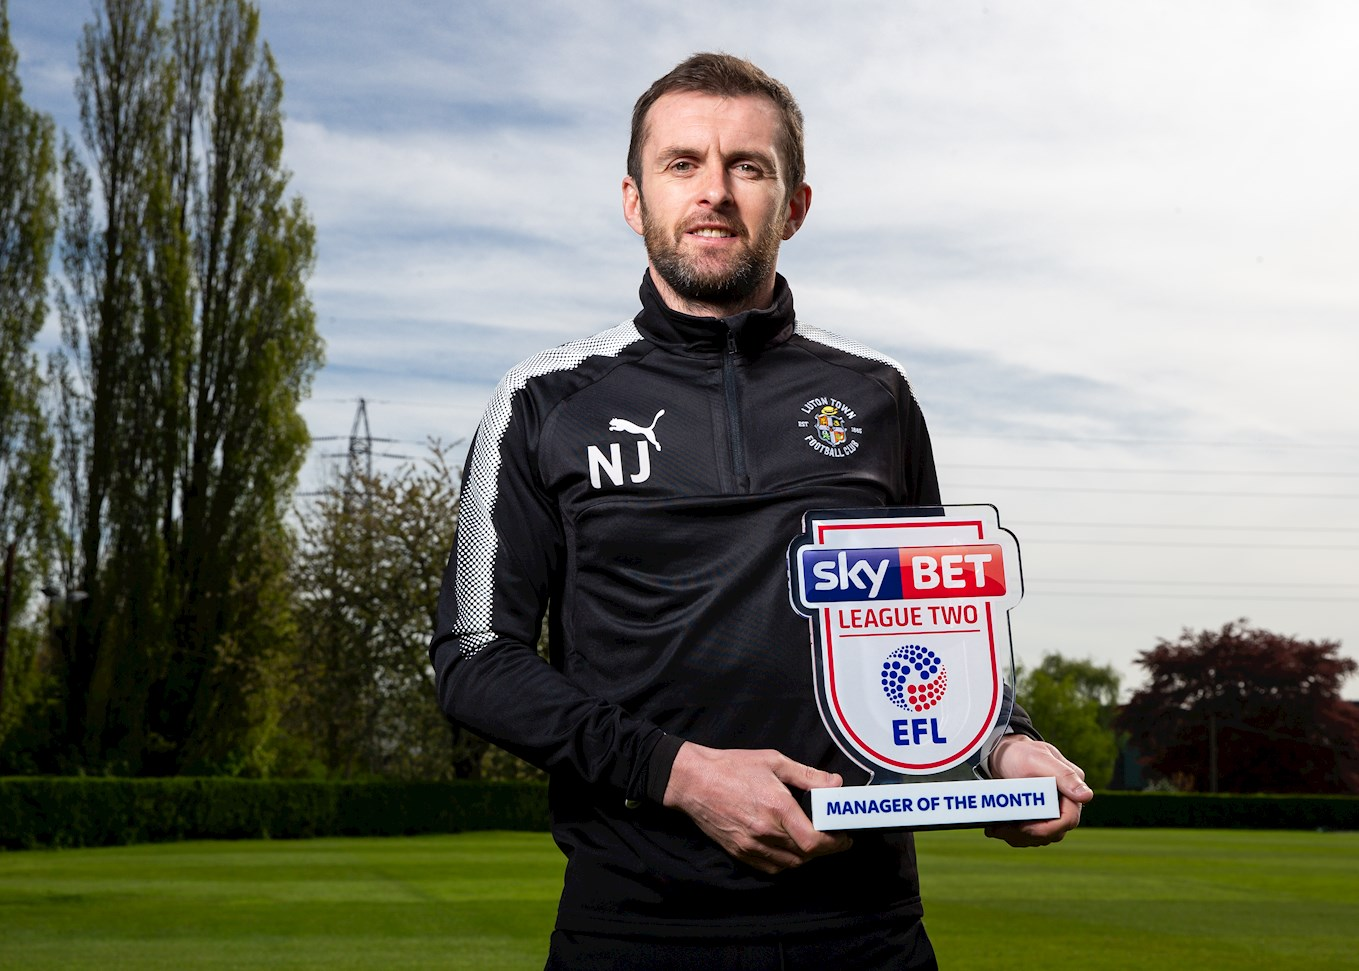 Hatters boss Nathan Jones with his Sky Bet League Two manager of the month award for April - the third one he has won during 2017-18